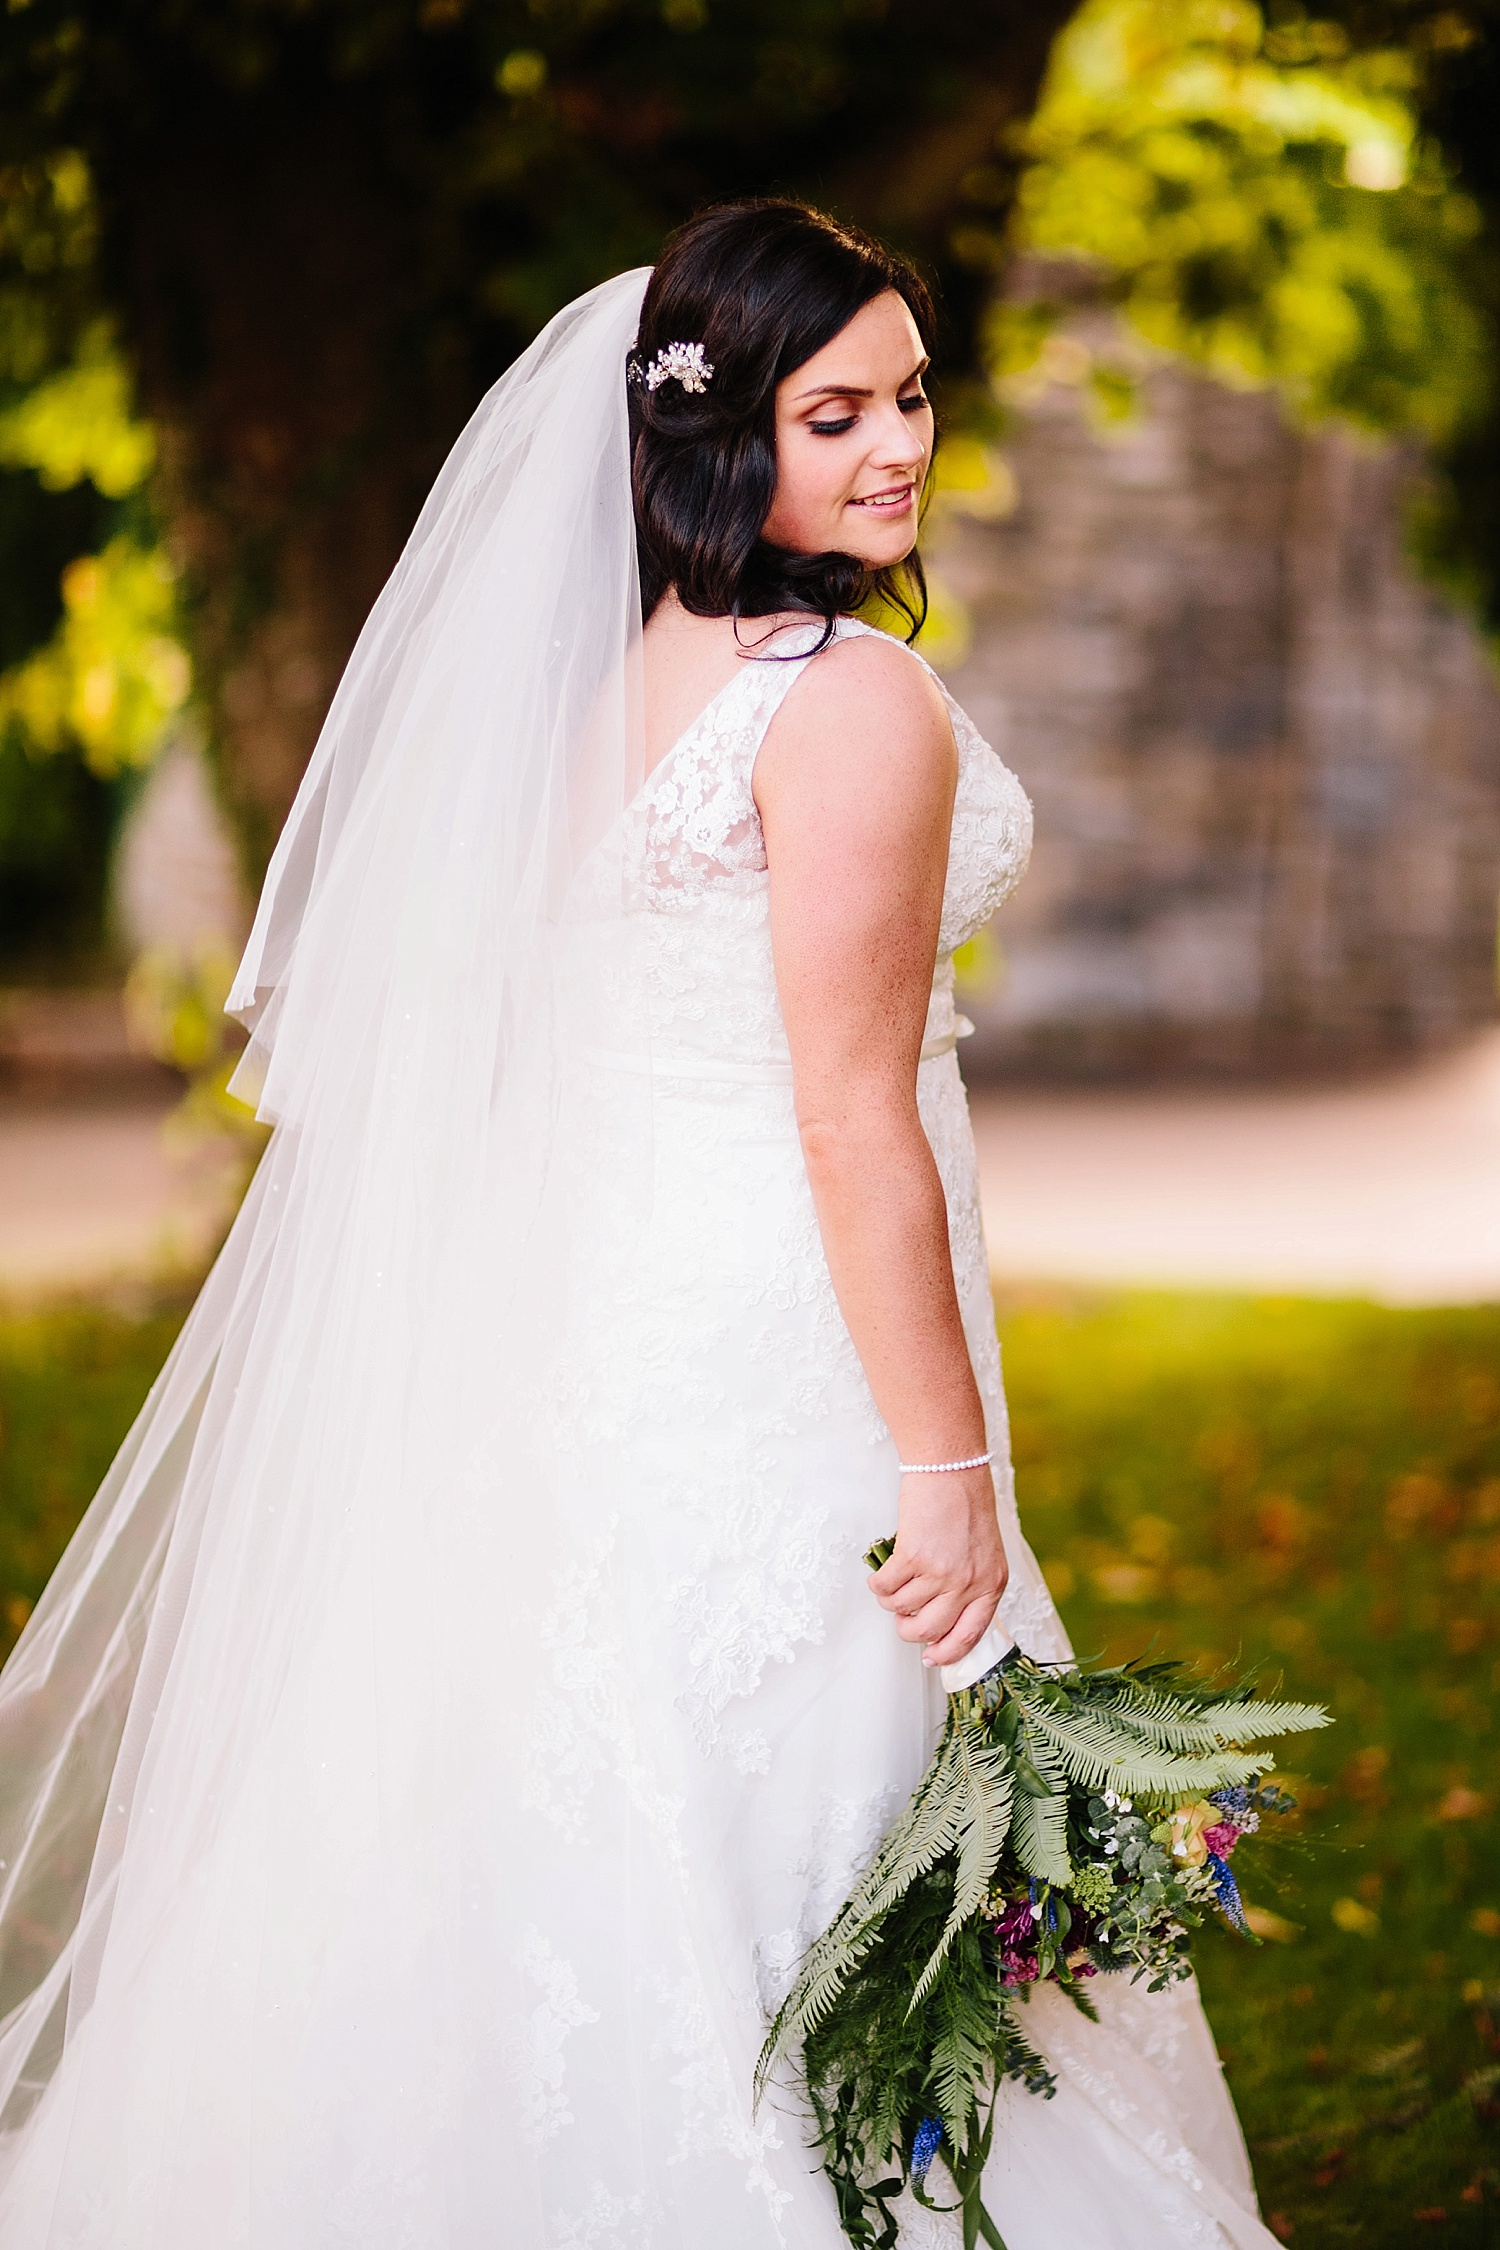 castle_dargan_wedding-fermanagh_wedding_photographer-ashford_castle_wedding-best_of_2016_sharon_kee_photography_0151